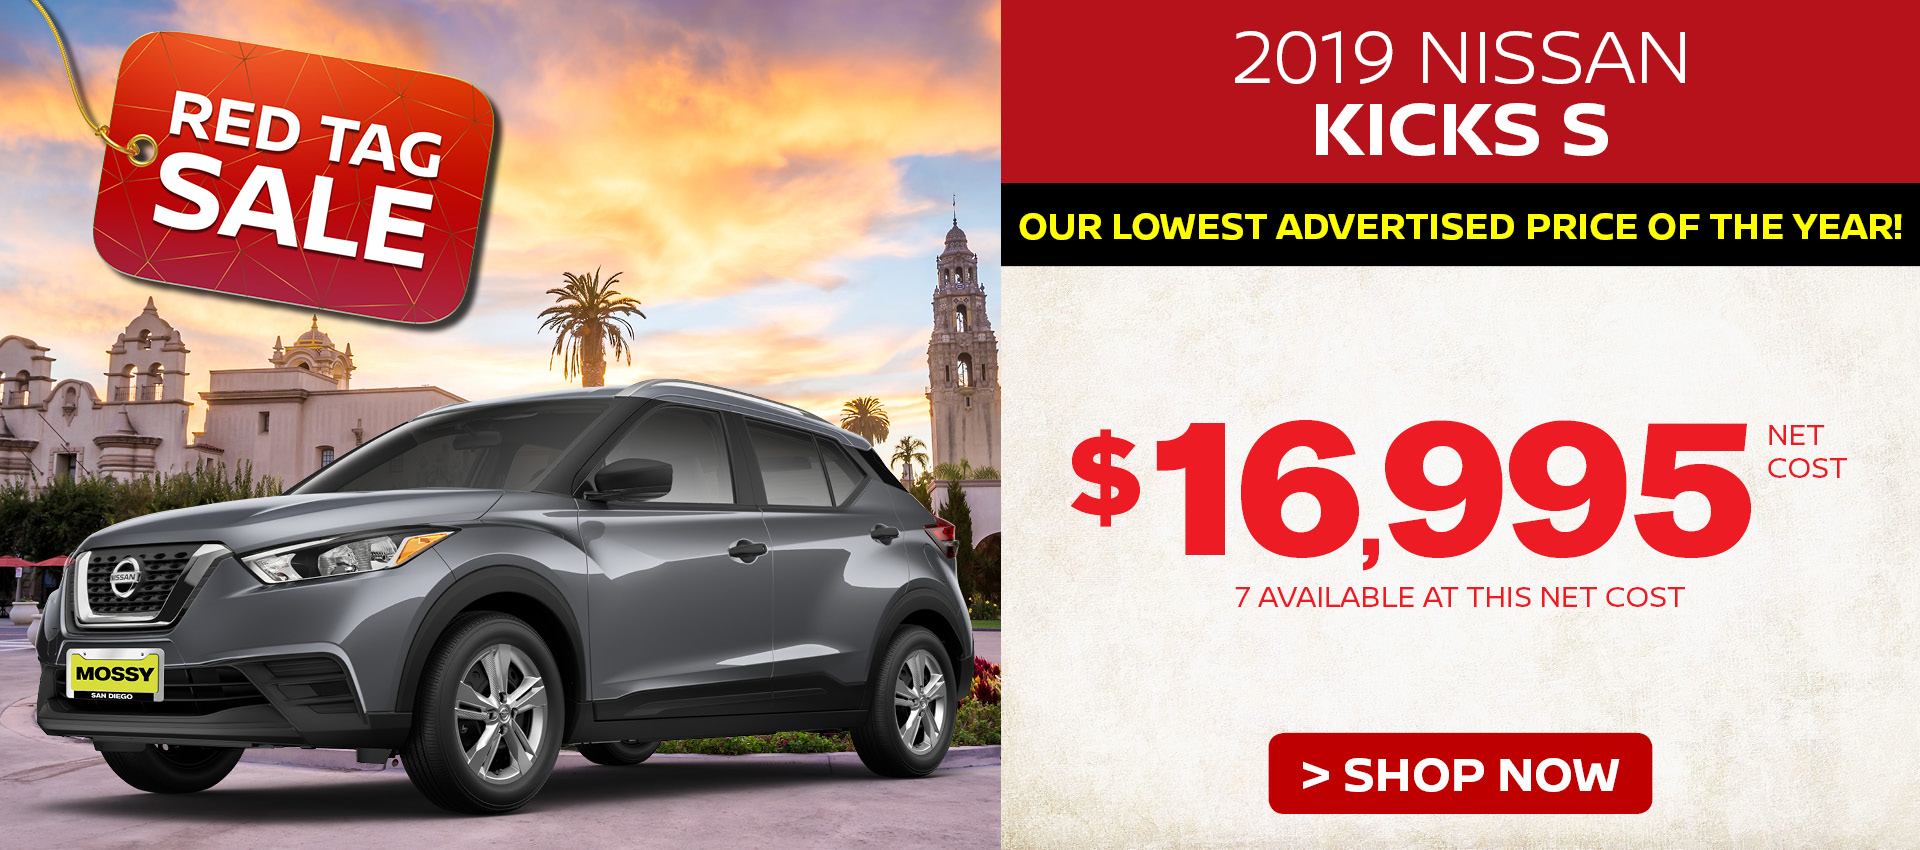 Mossy Nissan - Nissan Kicks $16,995 Purchase HP